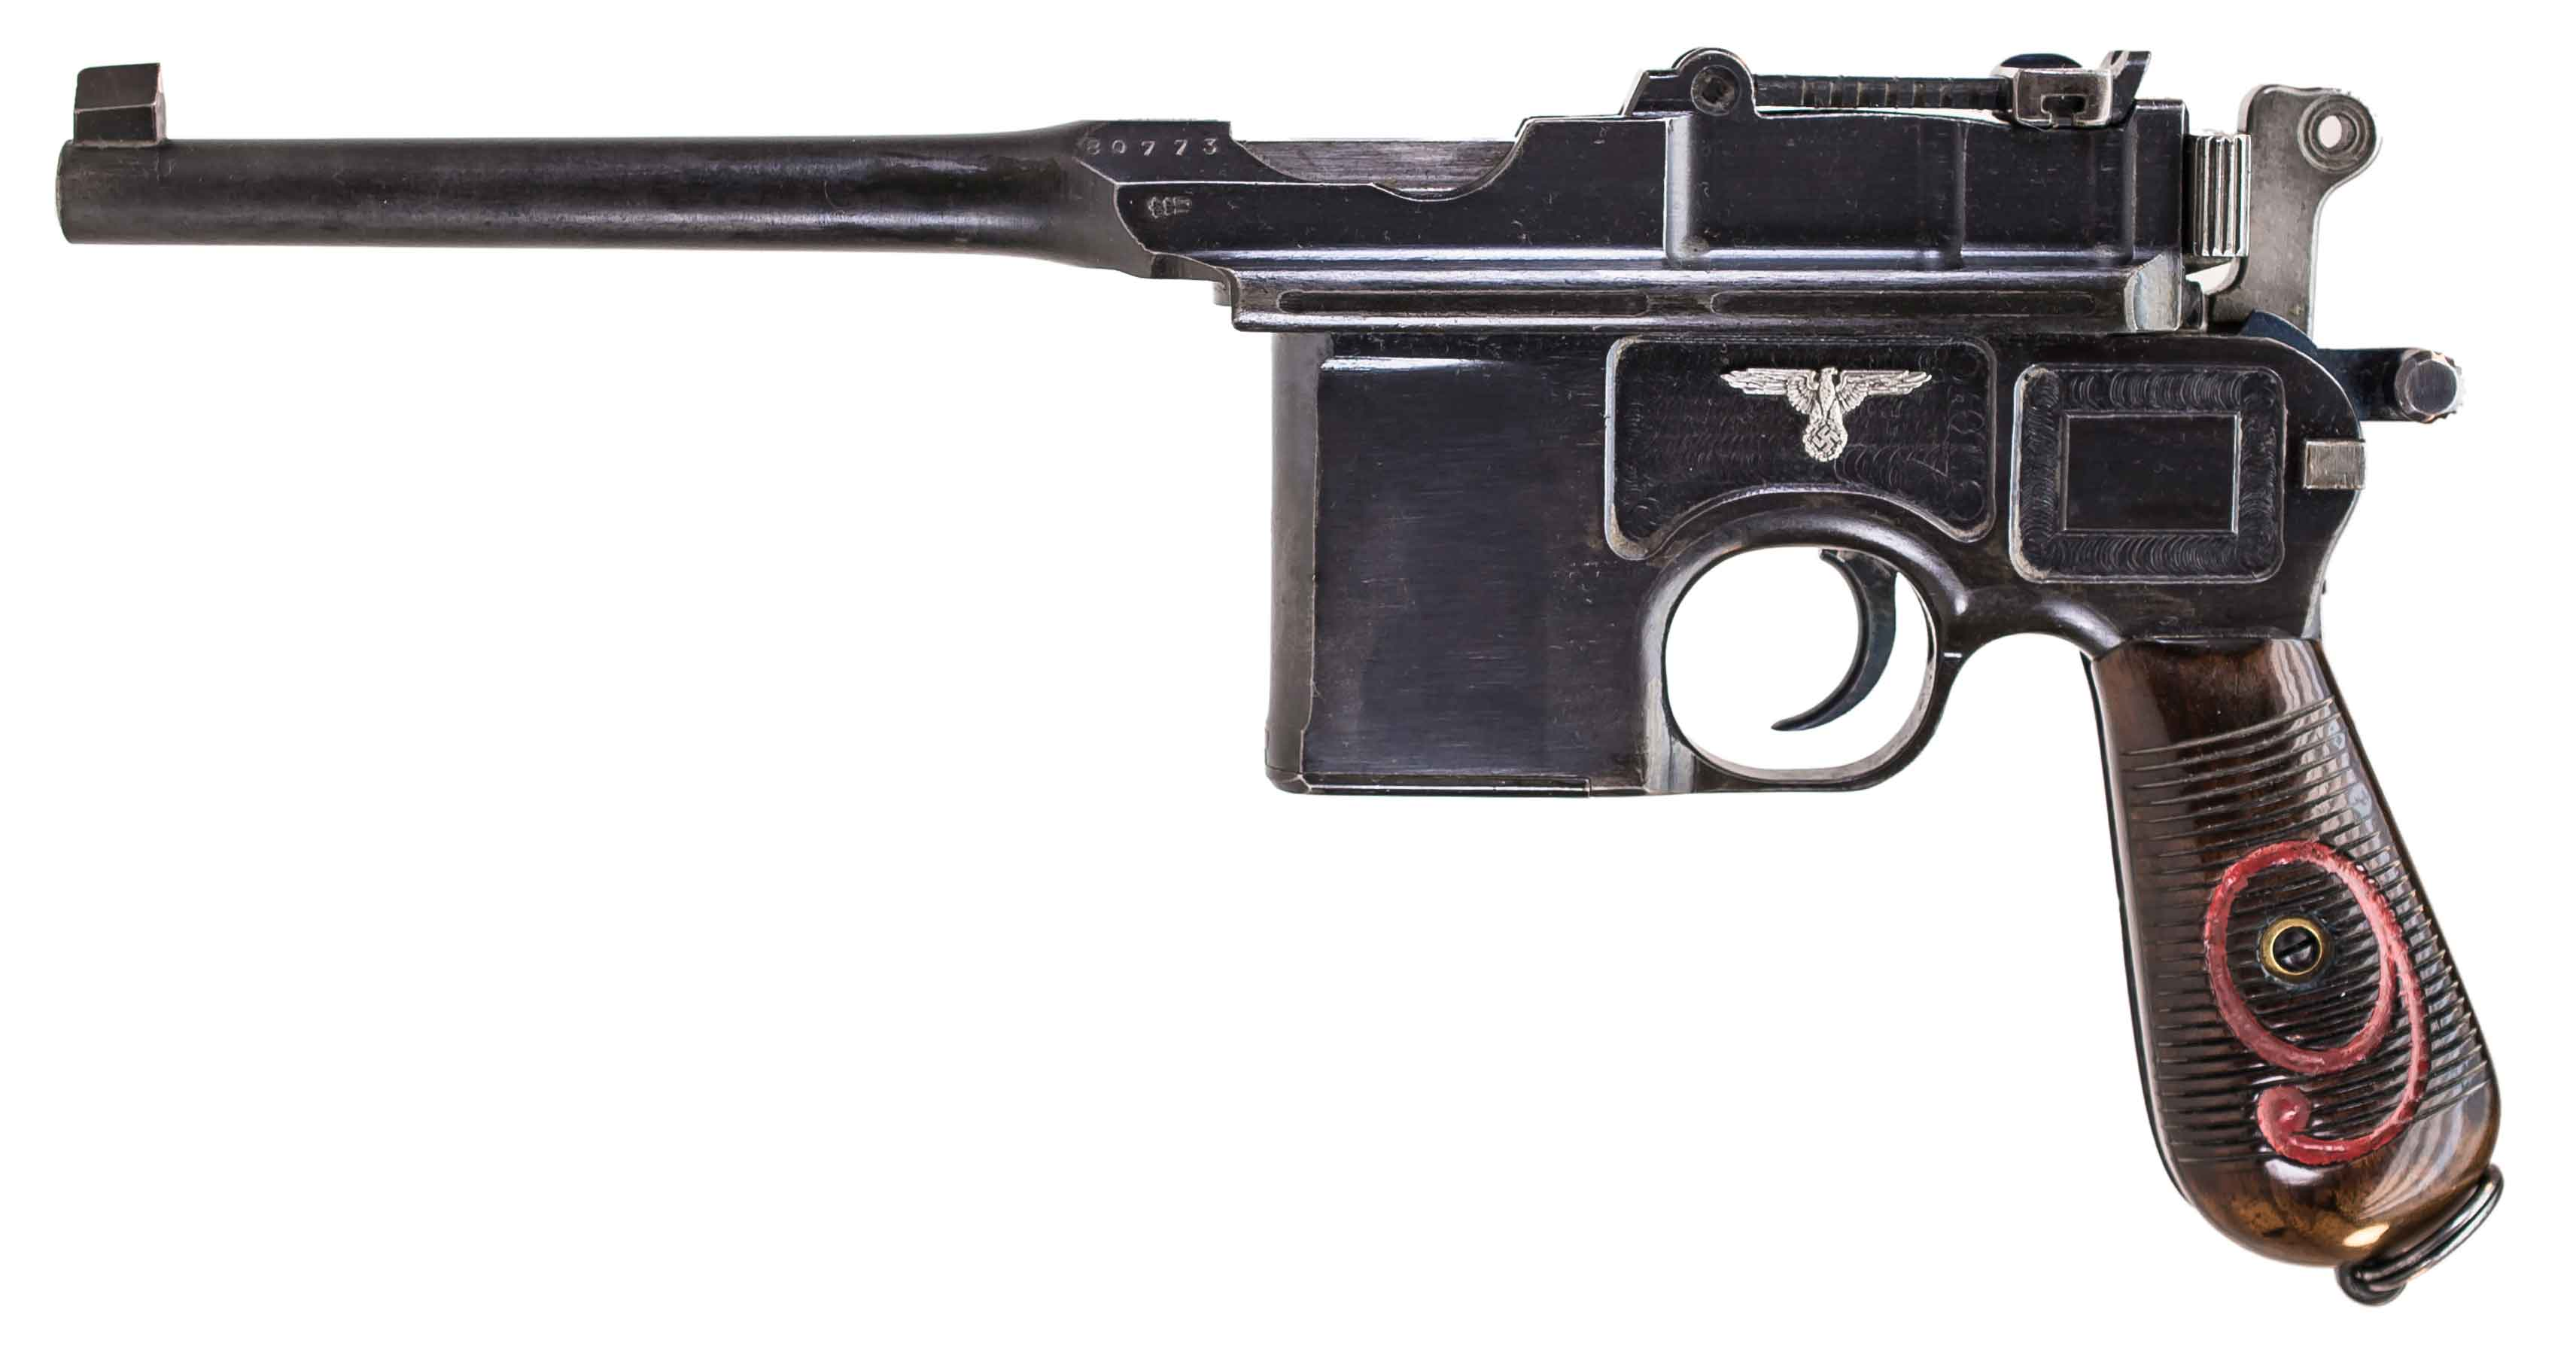 broomhandle mauser c96 9mm auction id 5343651 end time sep 20